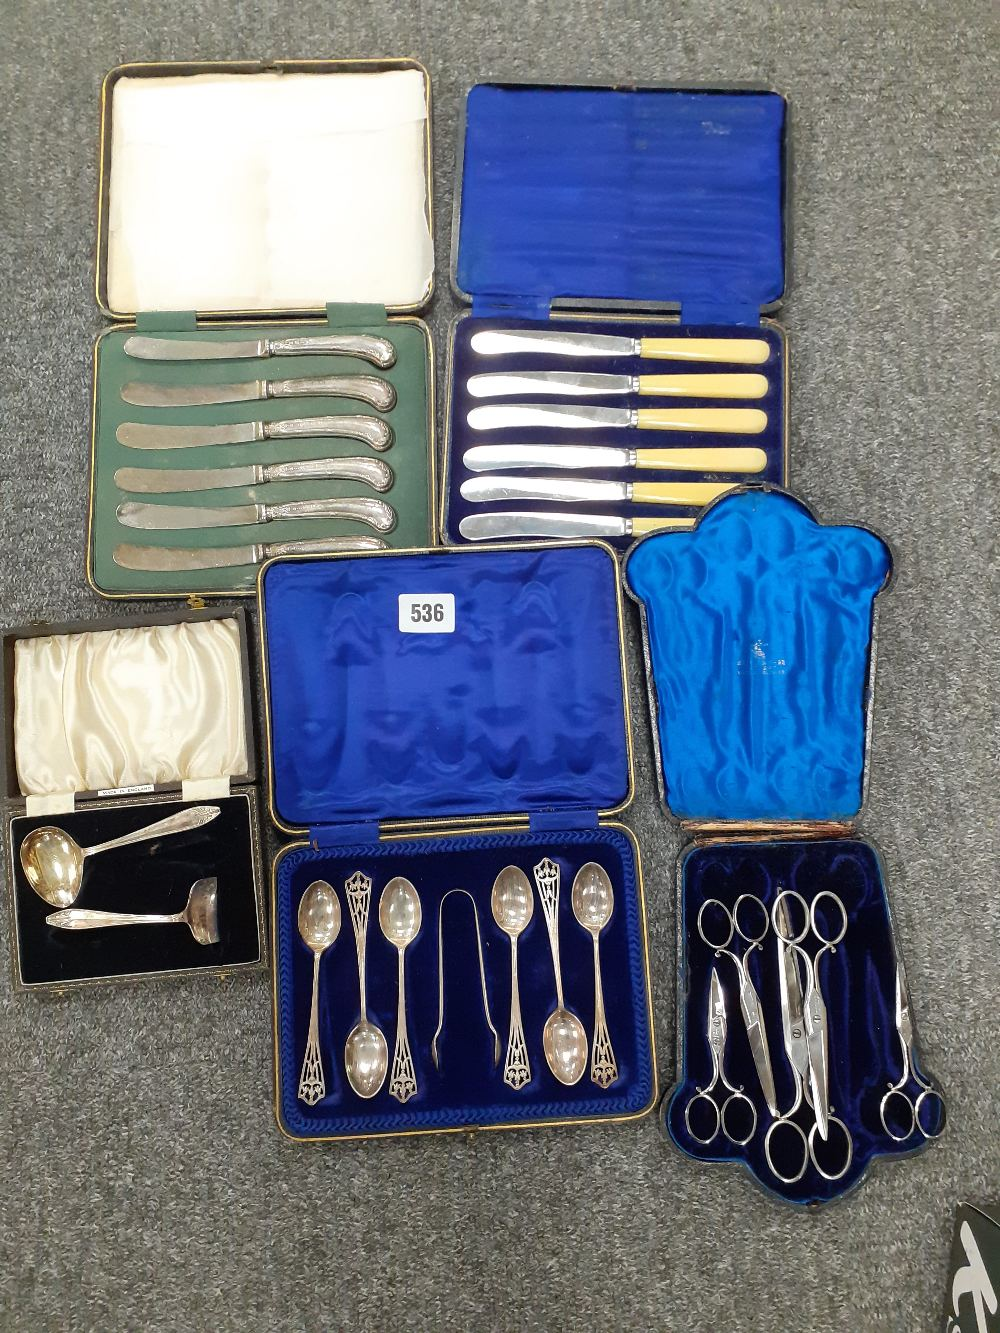 BOXED CASE OF SILVER TEASPOONS LONDON